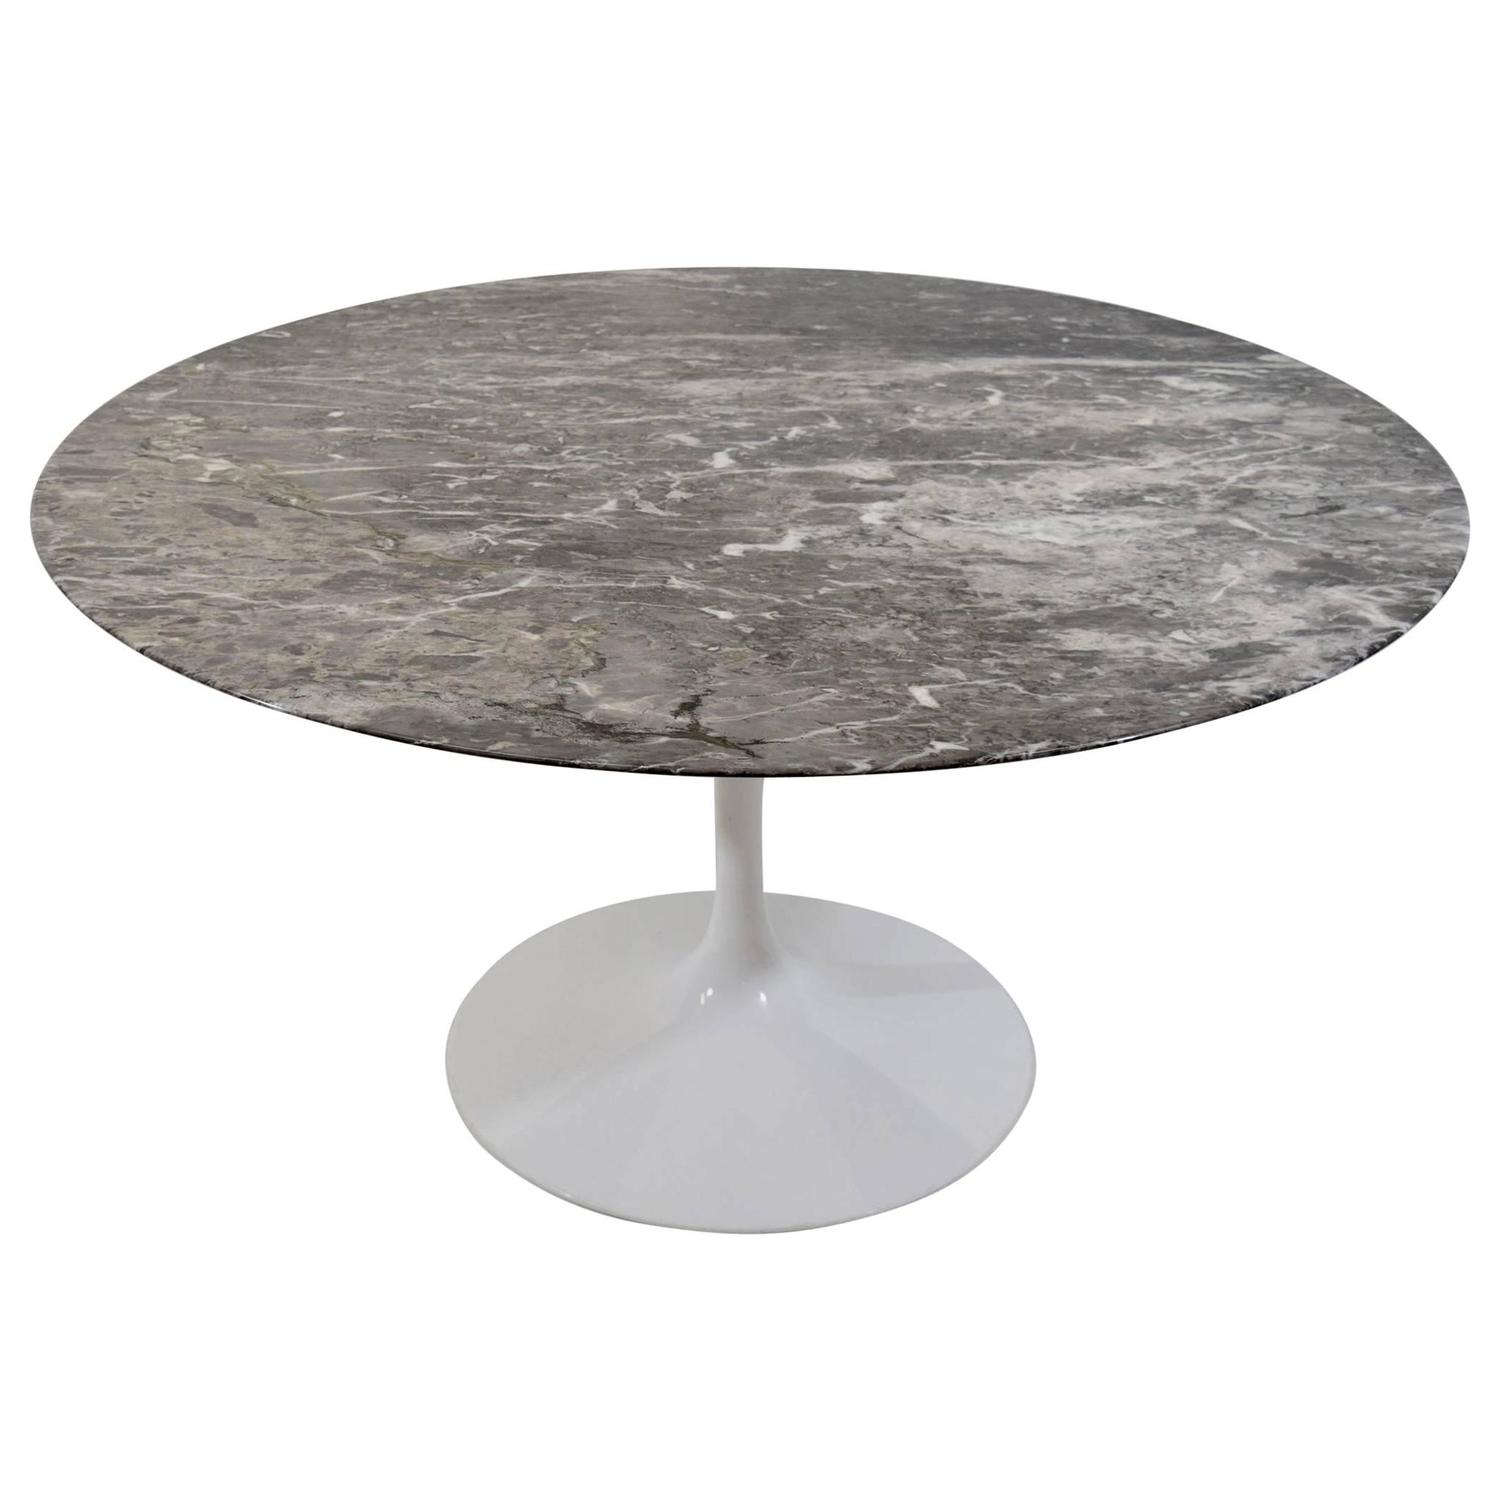 Knoll Grey Marble Saarinen Tulip Table at 1stdibs